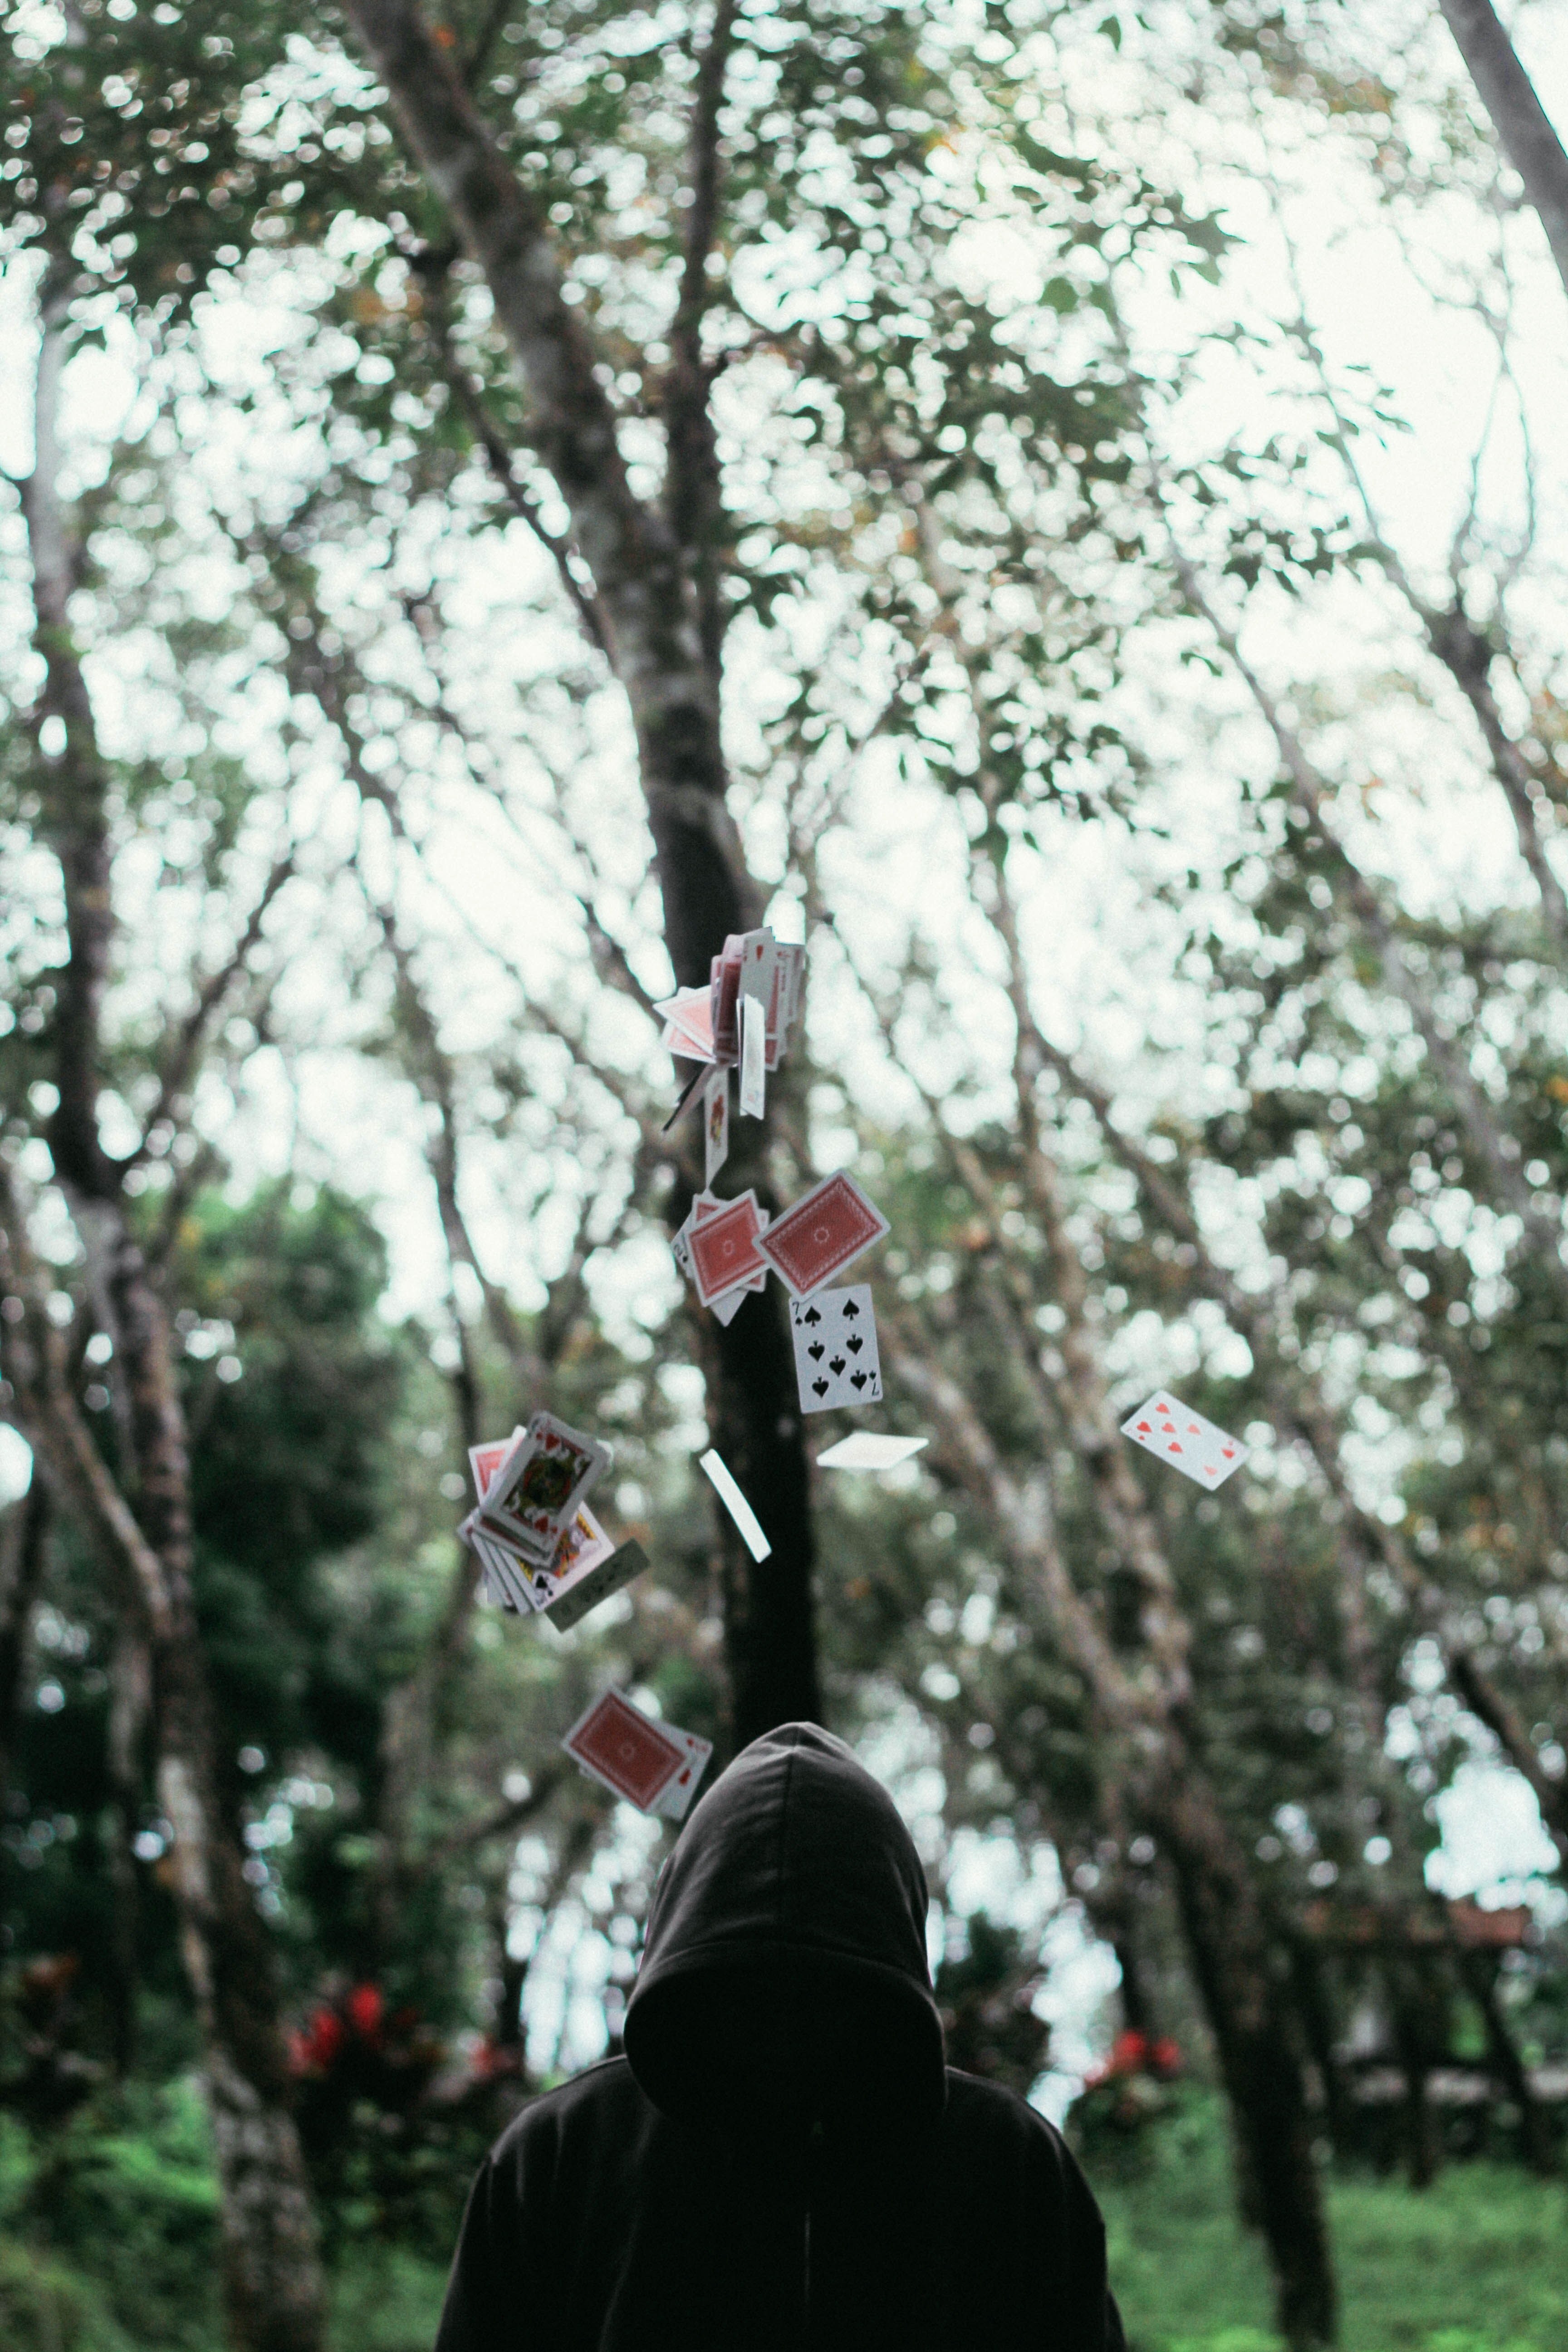 A person near a tree covered in hanging playing cards